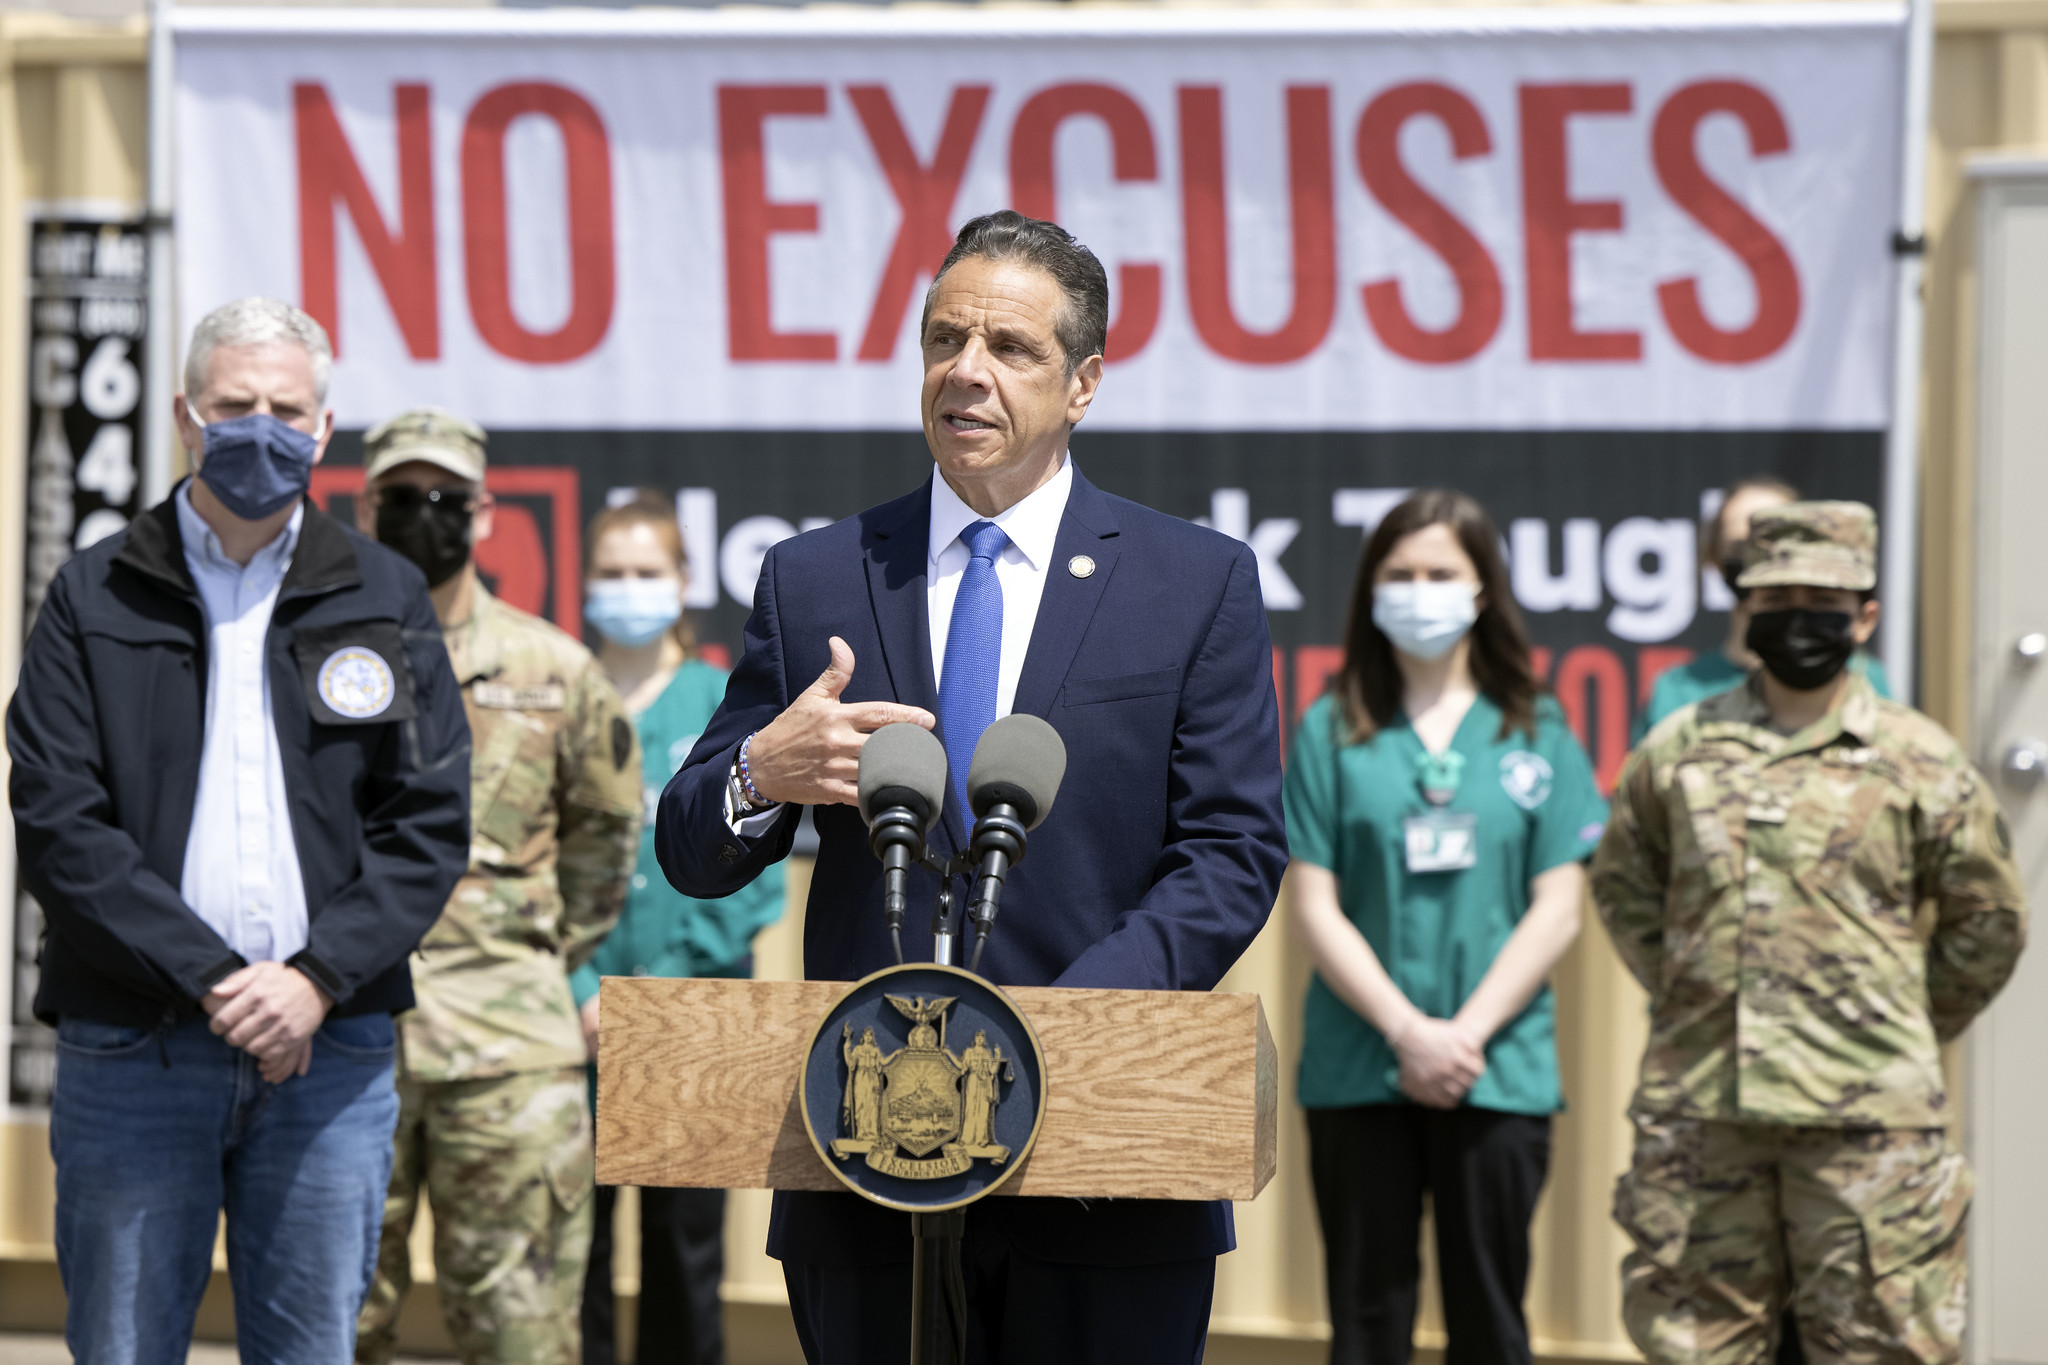 Governor Cuomo announces all state mass vaccination sites will be open to walk-in appointments, April 27th, 2021